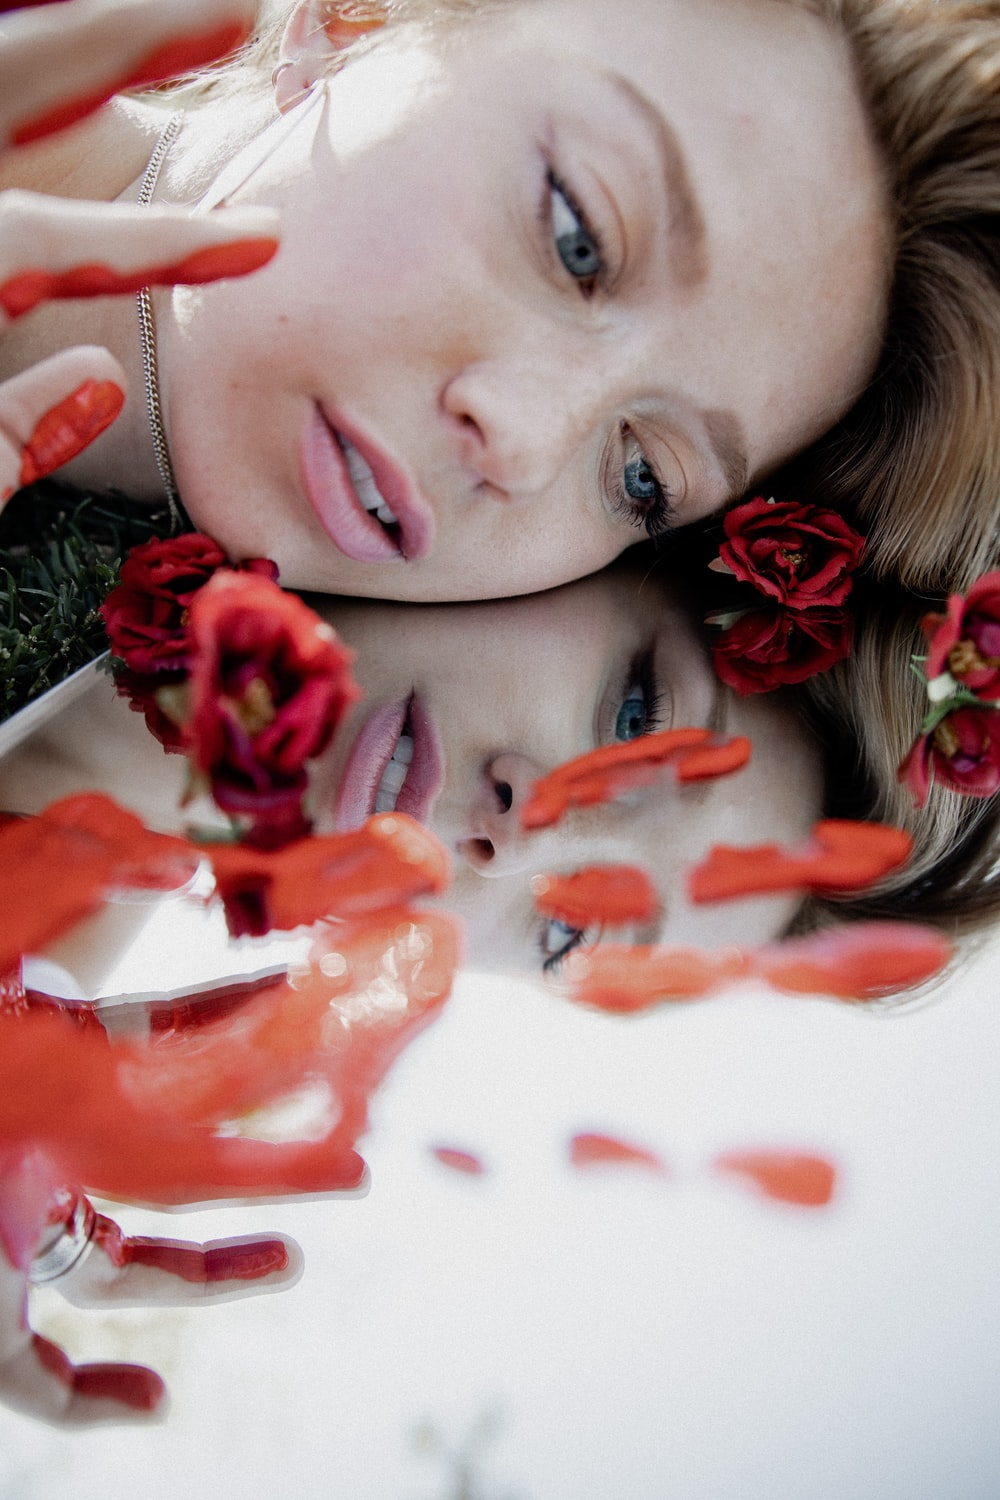 woman with red rose petals on her face